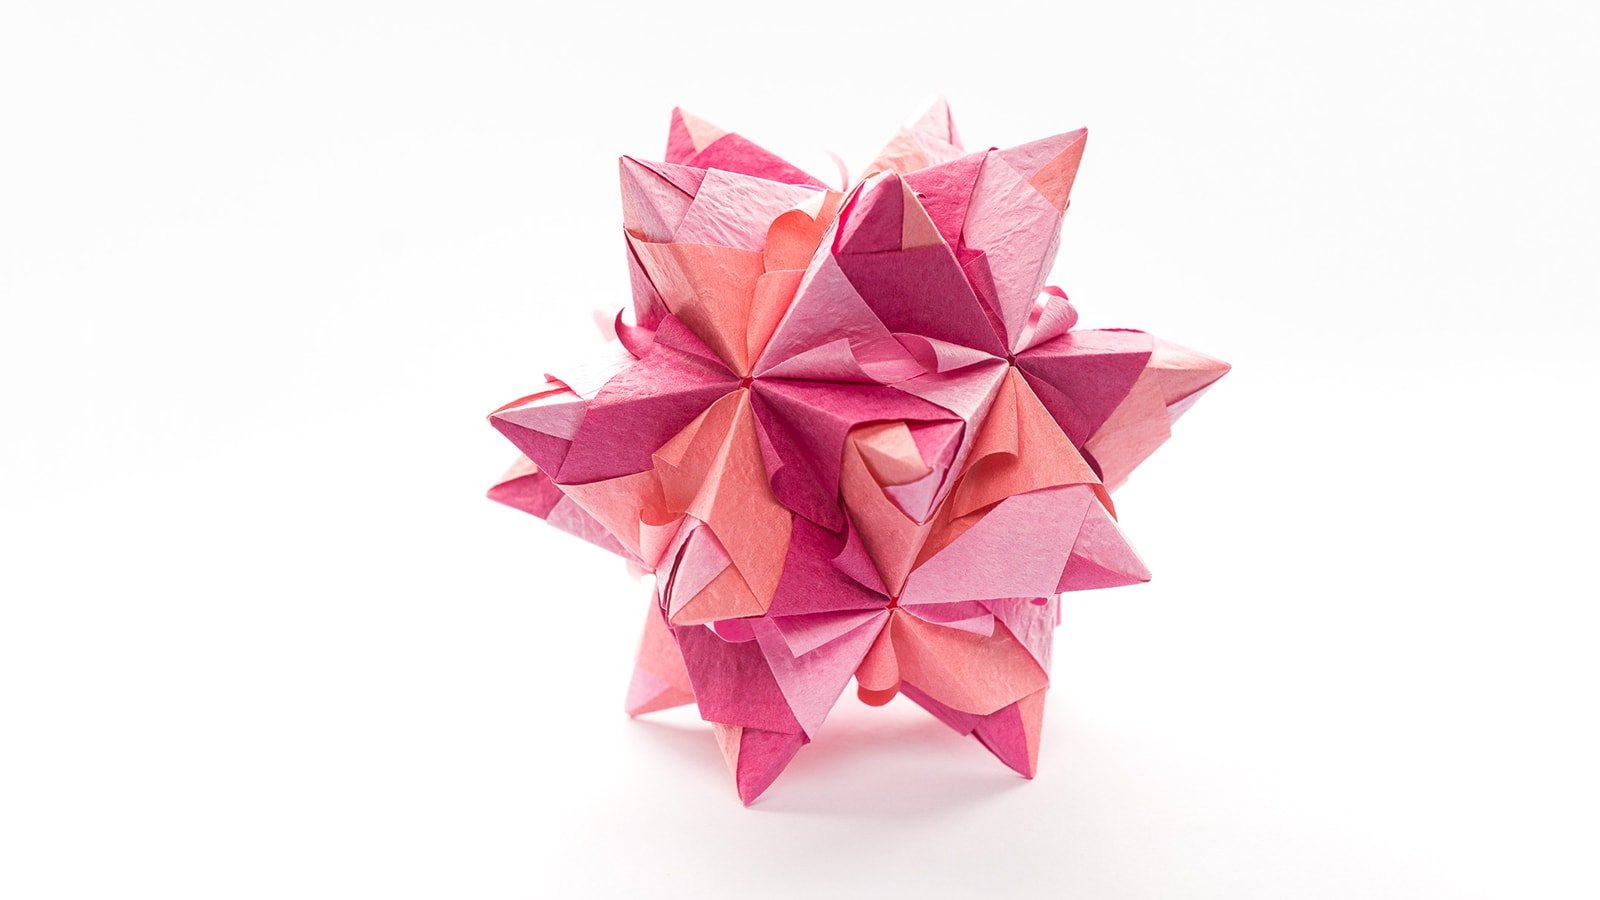 25 More Incredible Looking Origami Kusudamas